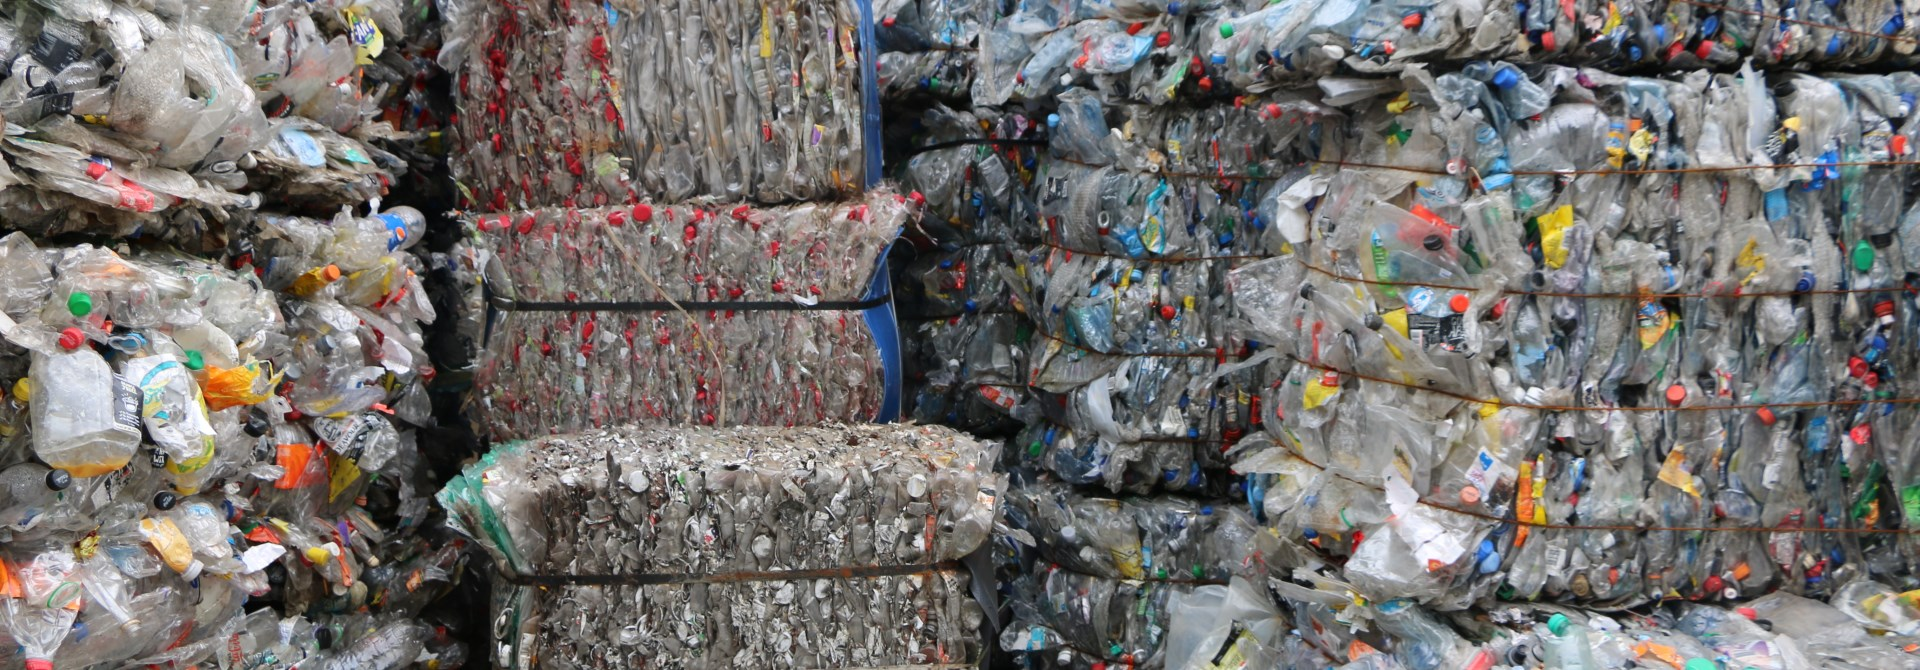 Bales of plastic bottles, thousands of them, ready to be sent to a recycling plant.